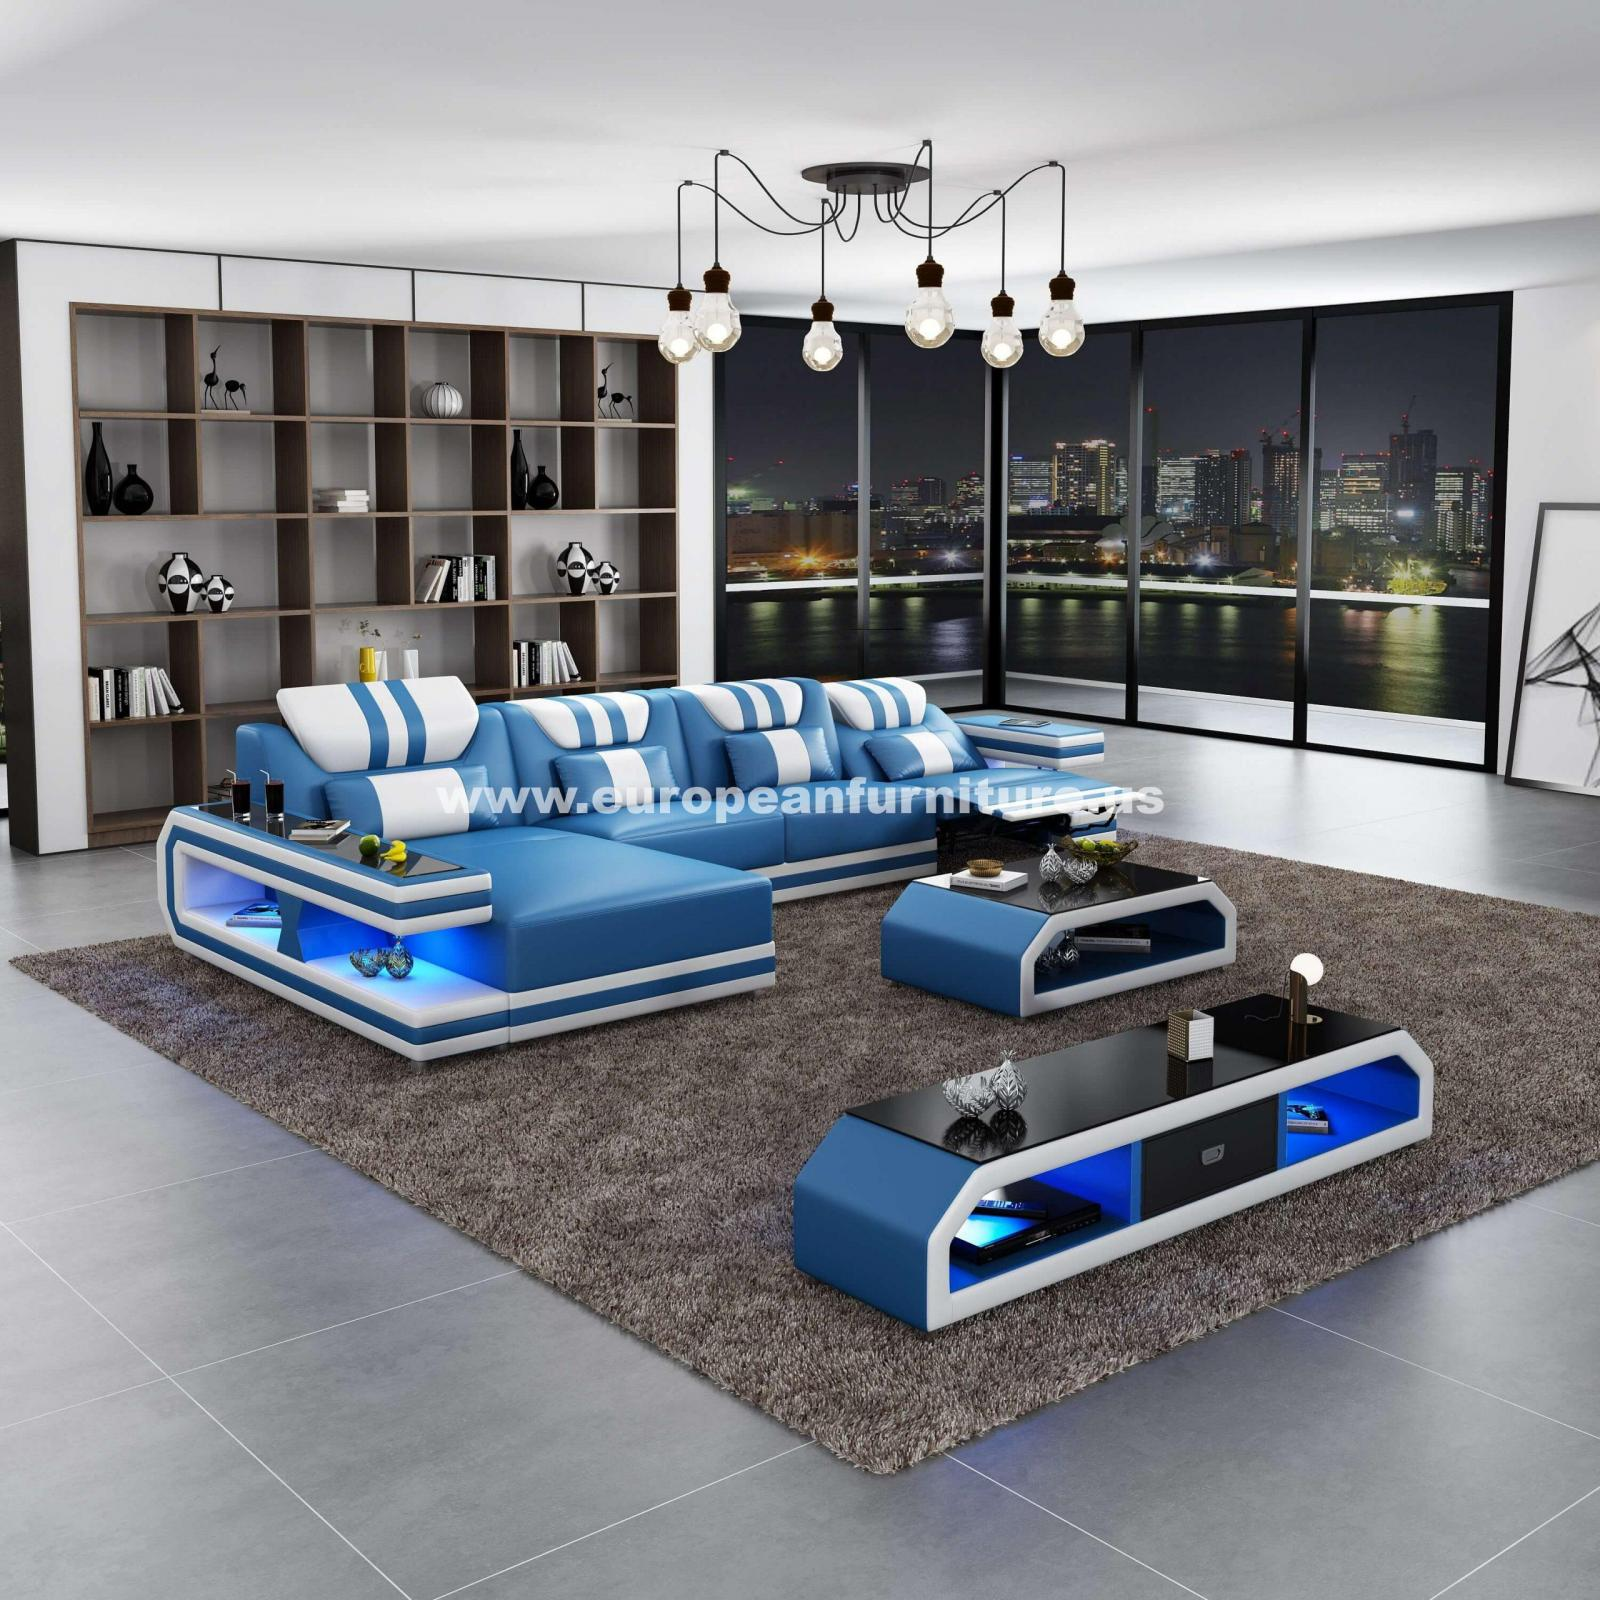 Contemporary, Modern Blue, White Italian Leather and Wood, Genuine leather, Solid Hardwood Reclining Sectional LHC LIGHTSPEED by European Furniture